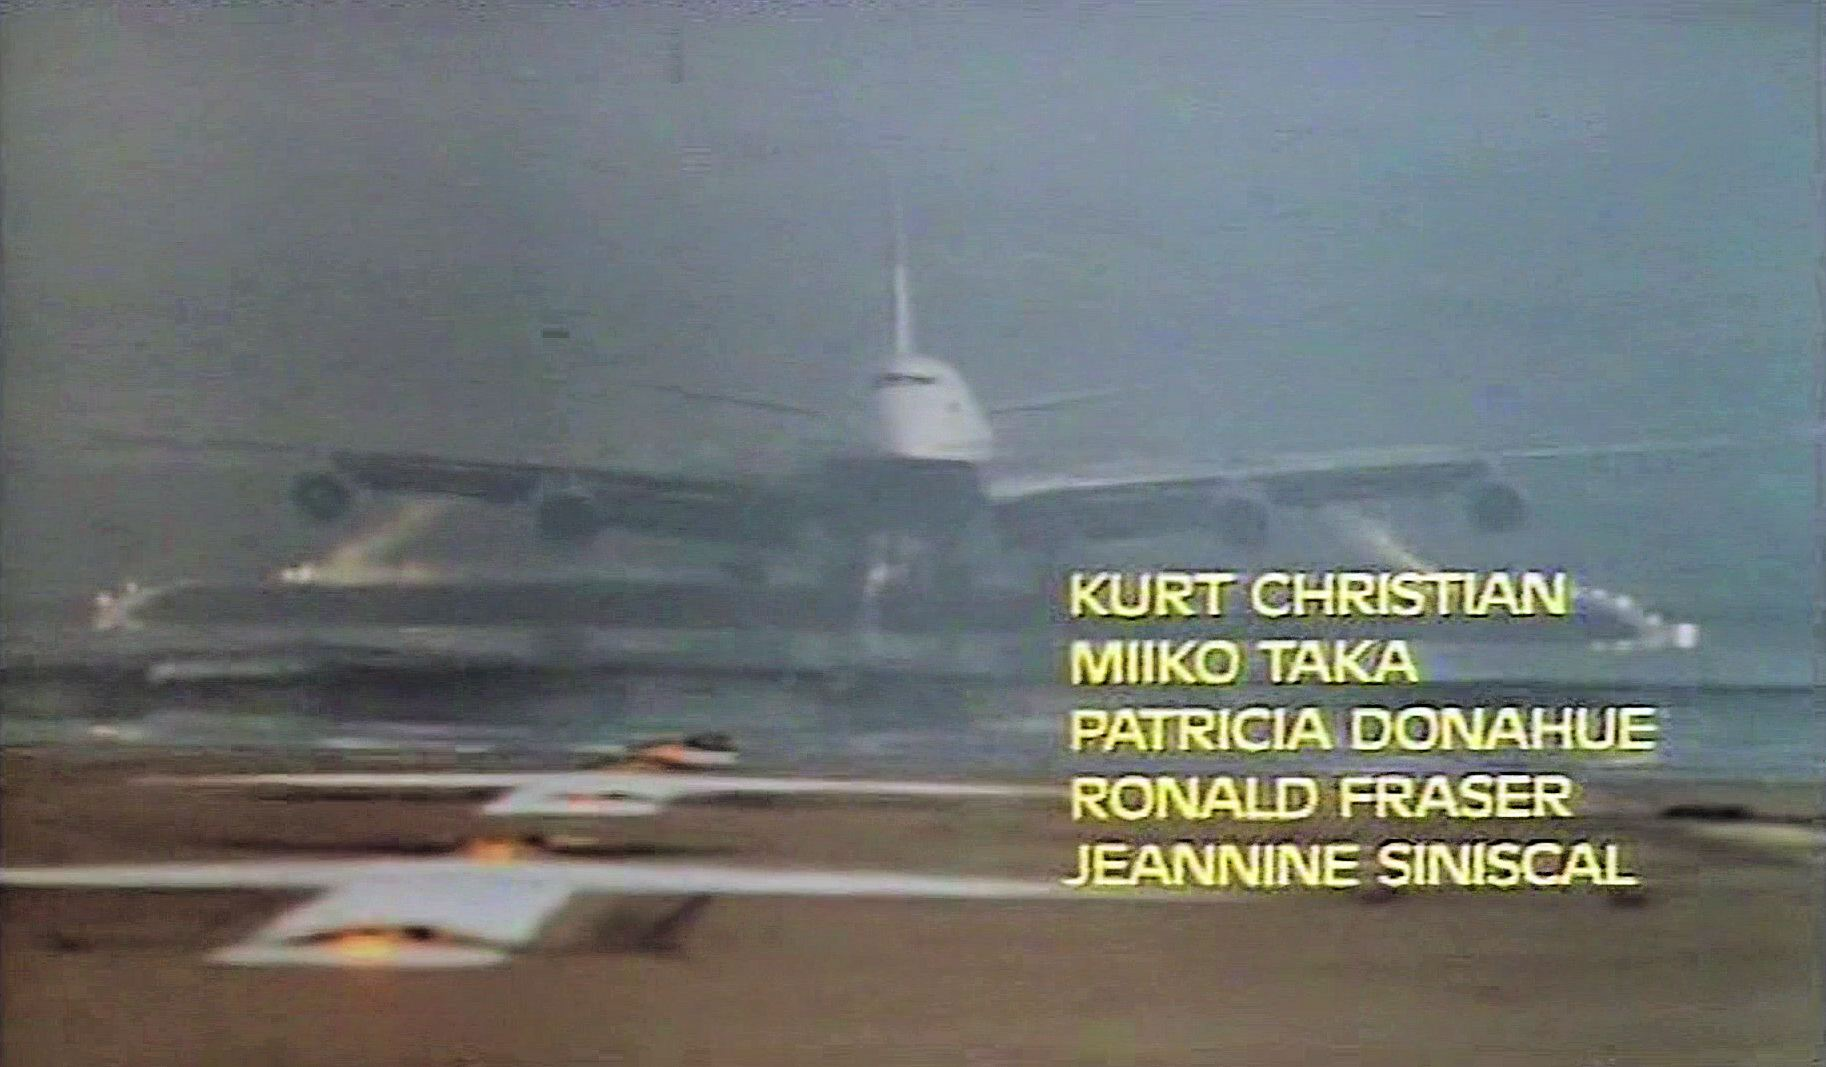 Main title from Paper Tiger (1975) (8).  Kurt Christian Miko Taka, Patricia Donahue, Ronald Fraser, Jeannine Siniscal